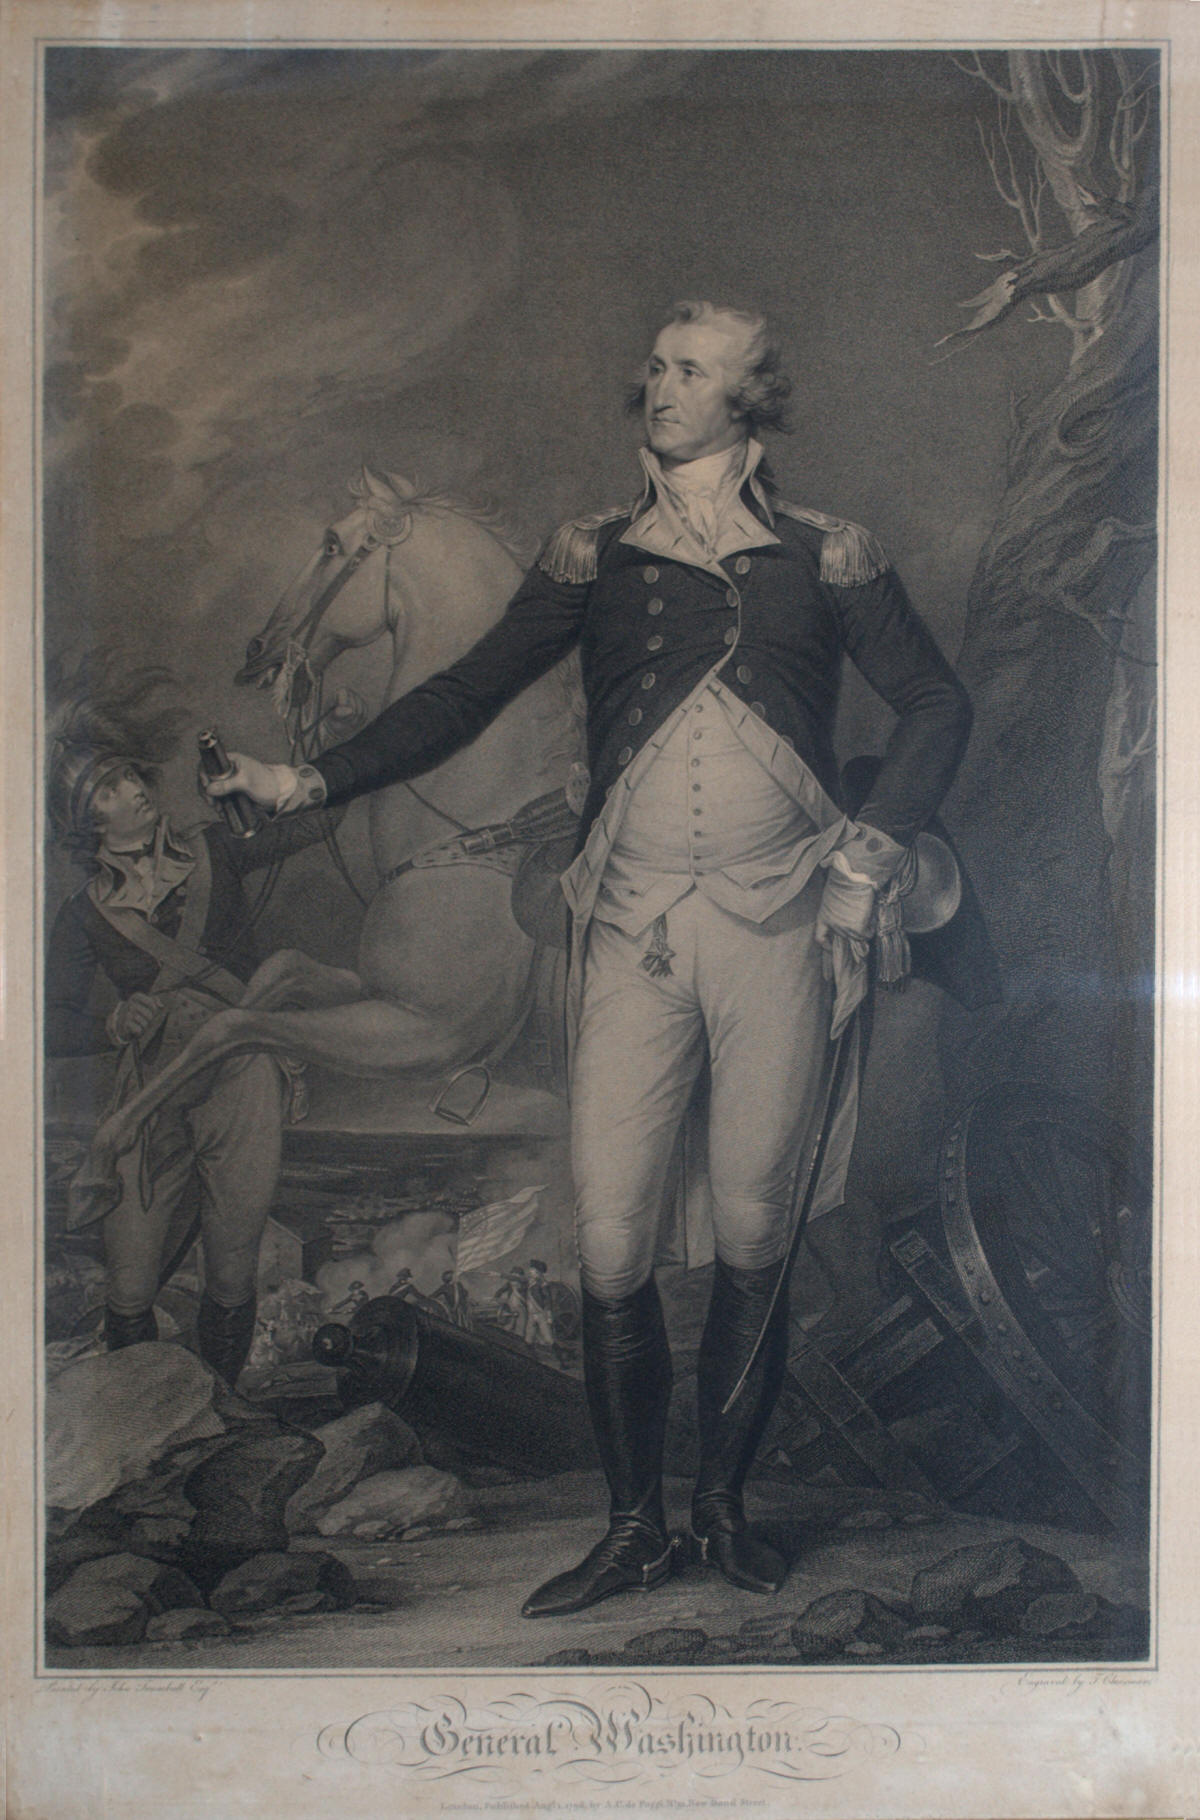 George Washington engraving after John Trumbull